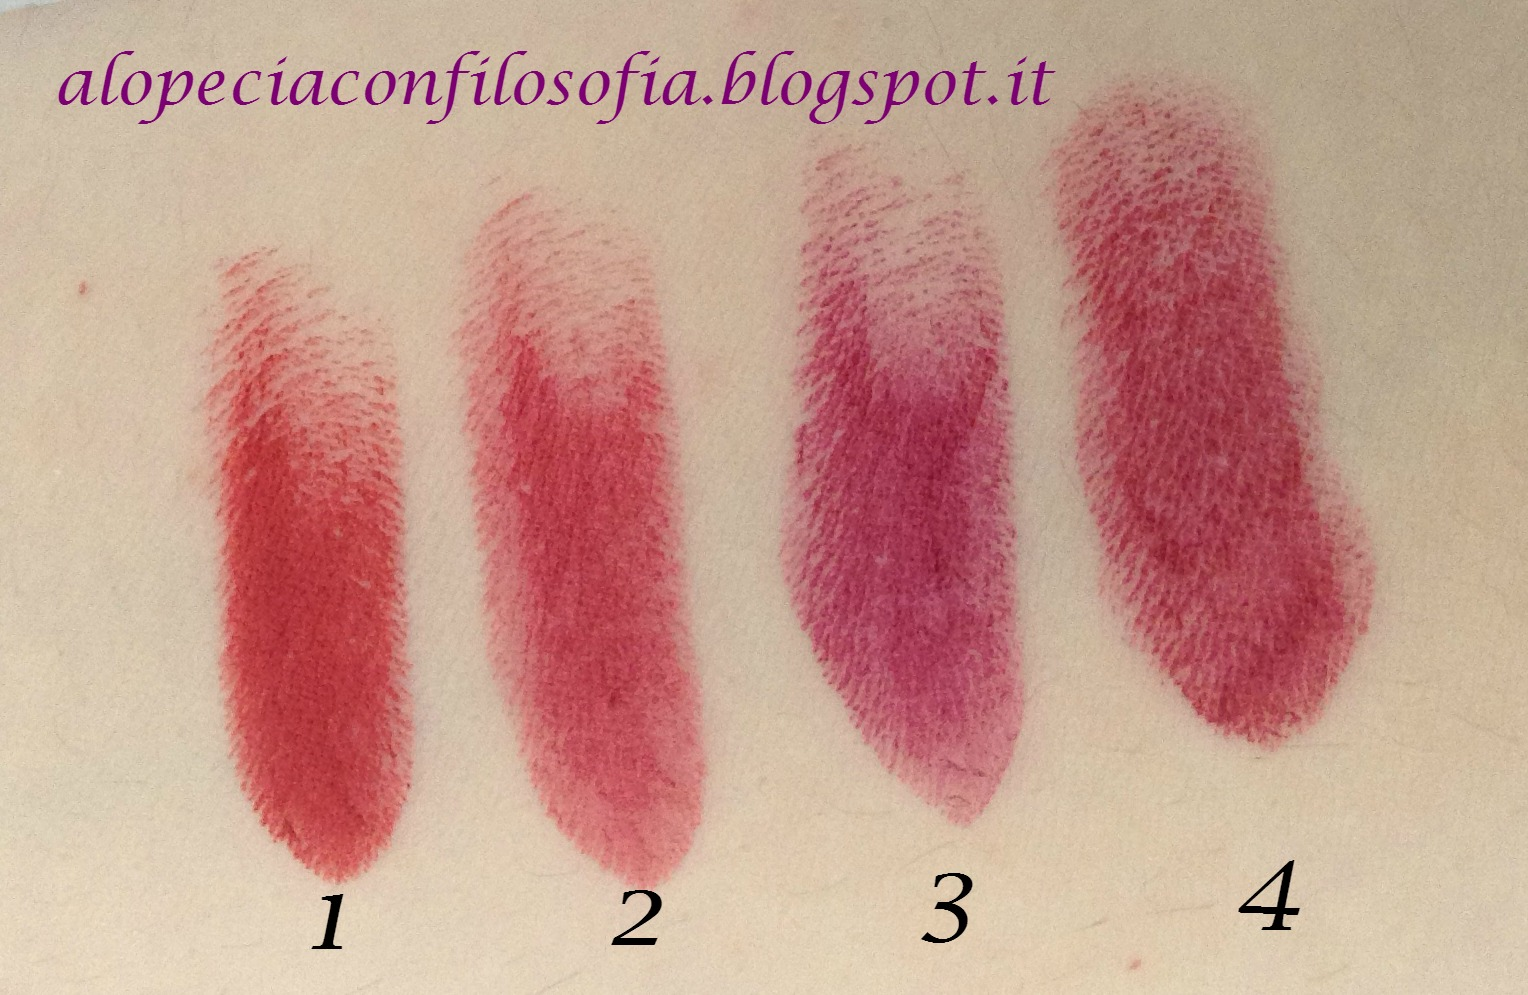 lavera, wild cherry, deep red, matt'n'plum, sweet brumble, kiss me deadly, alopeciaconfilosofia